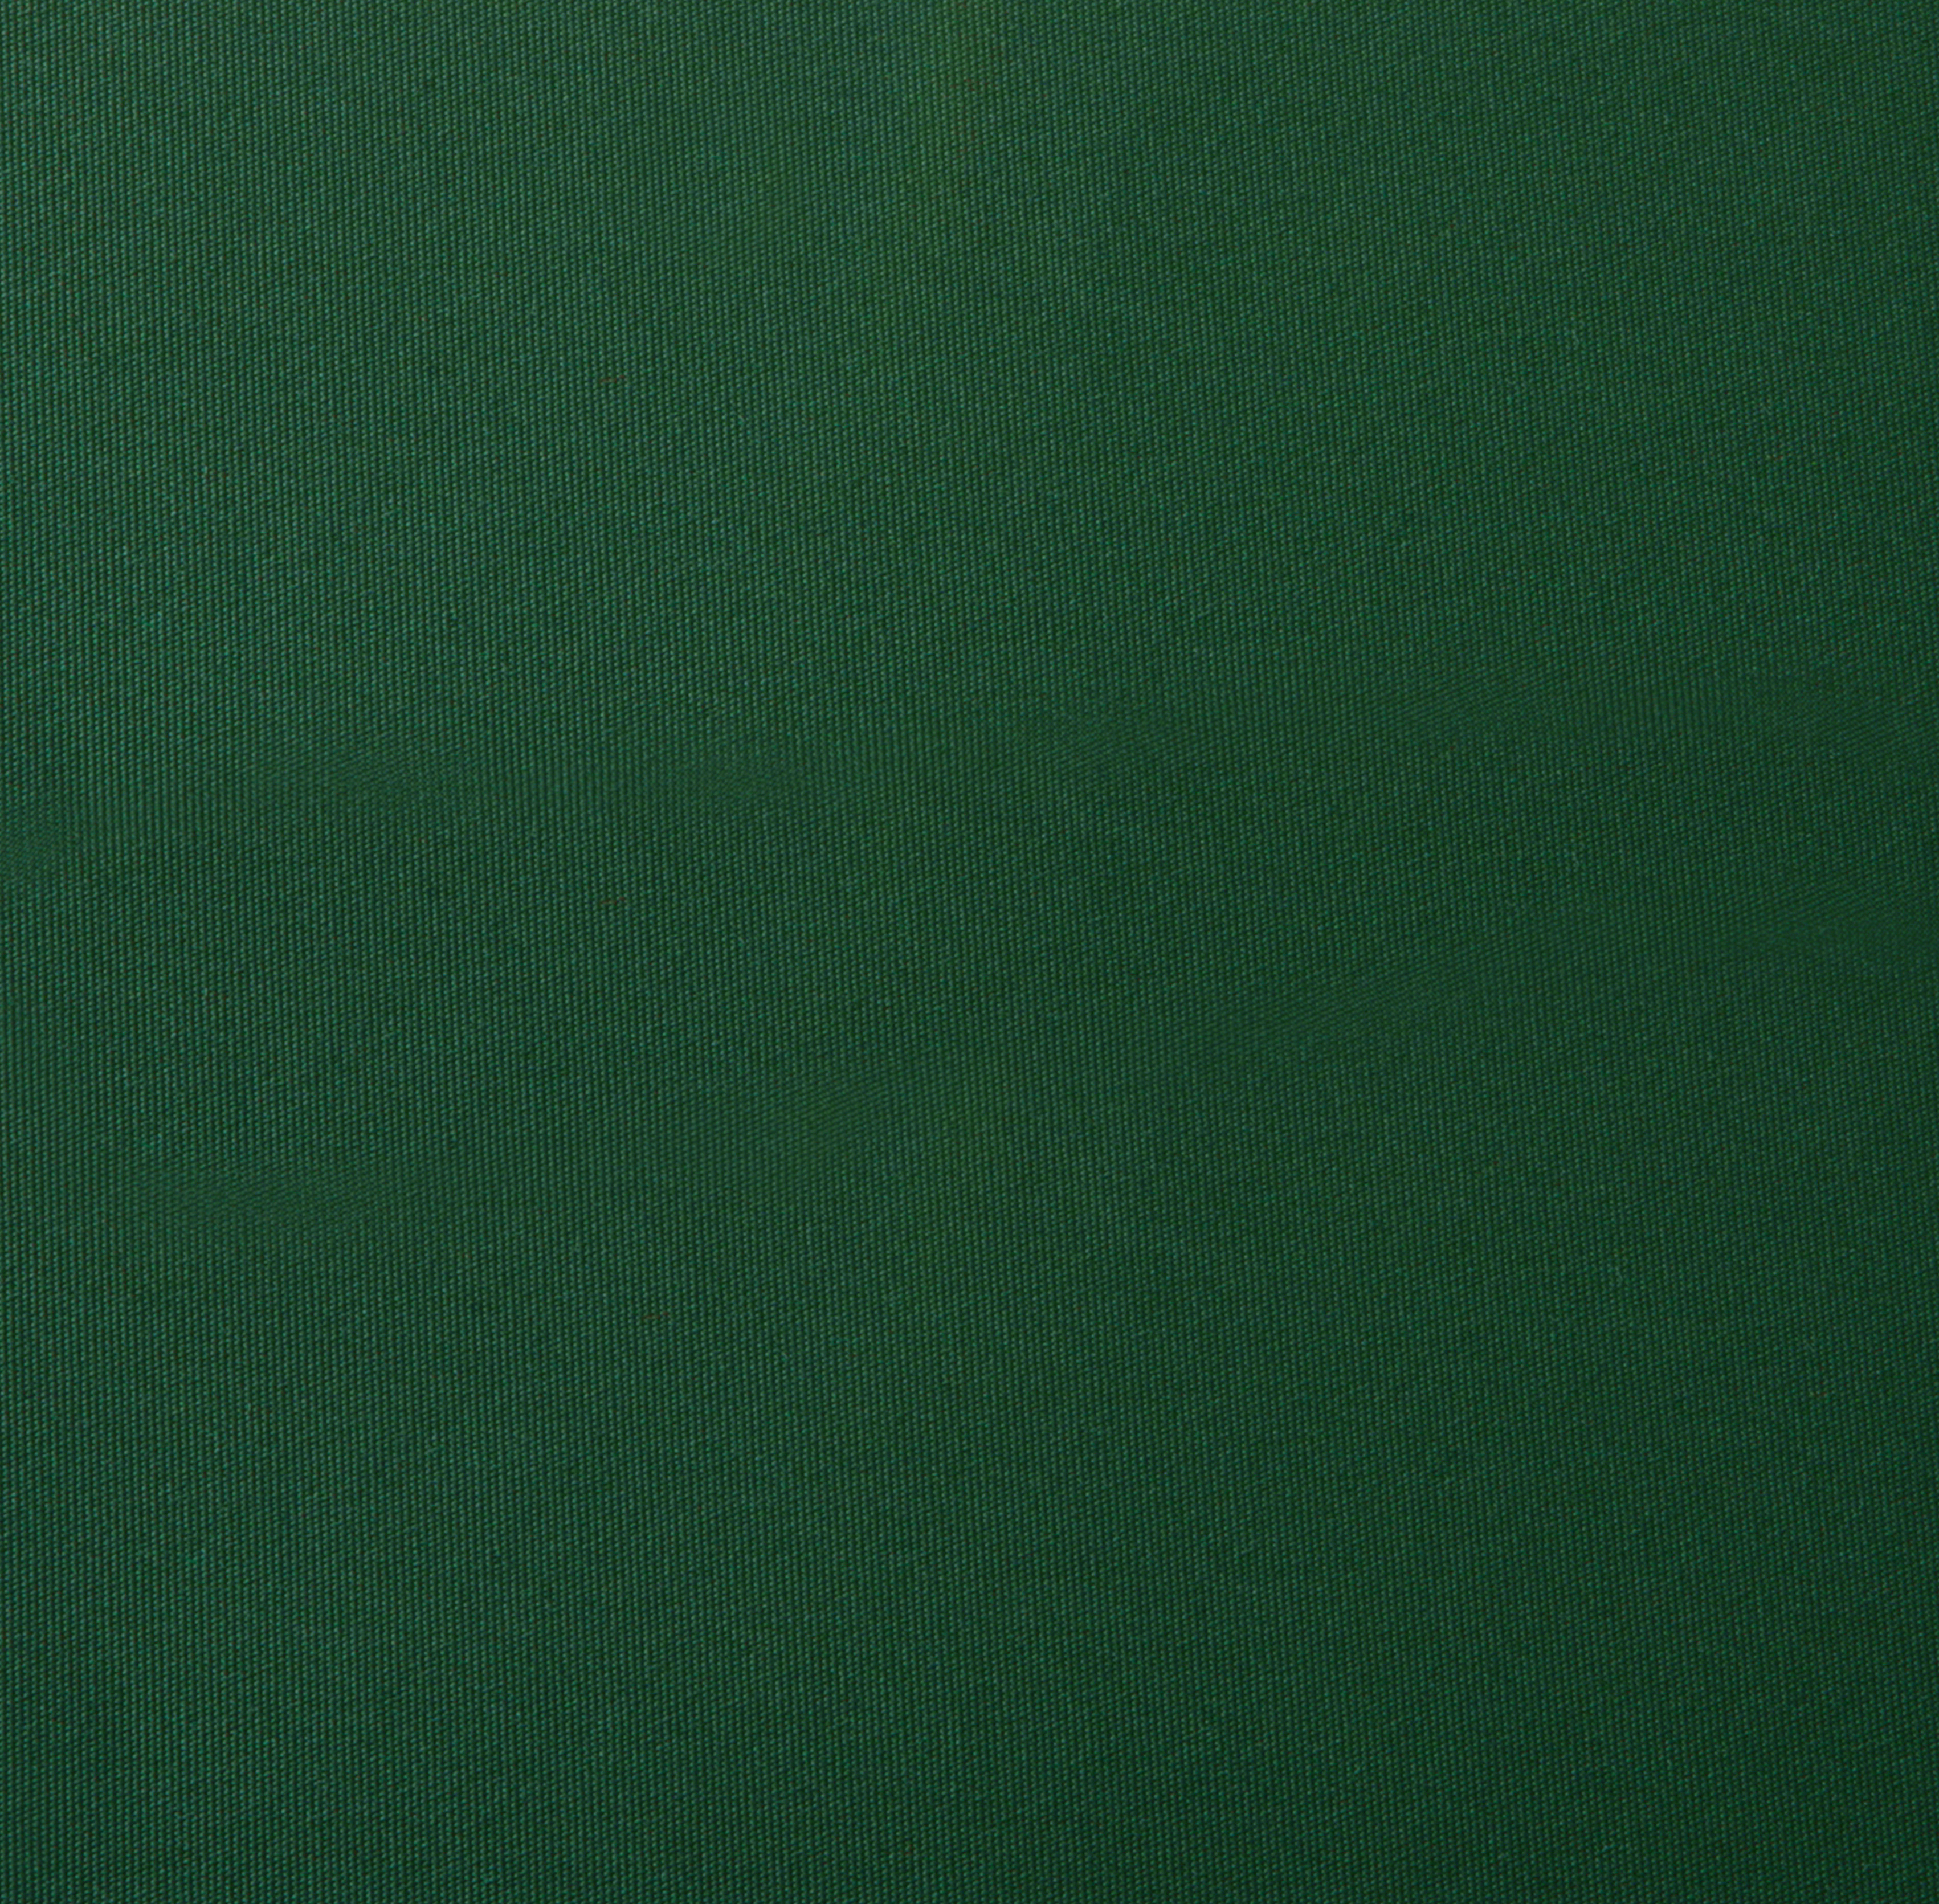 Plain Green Polyester Cover For 6 0m X 3m Awning Includes